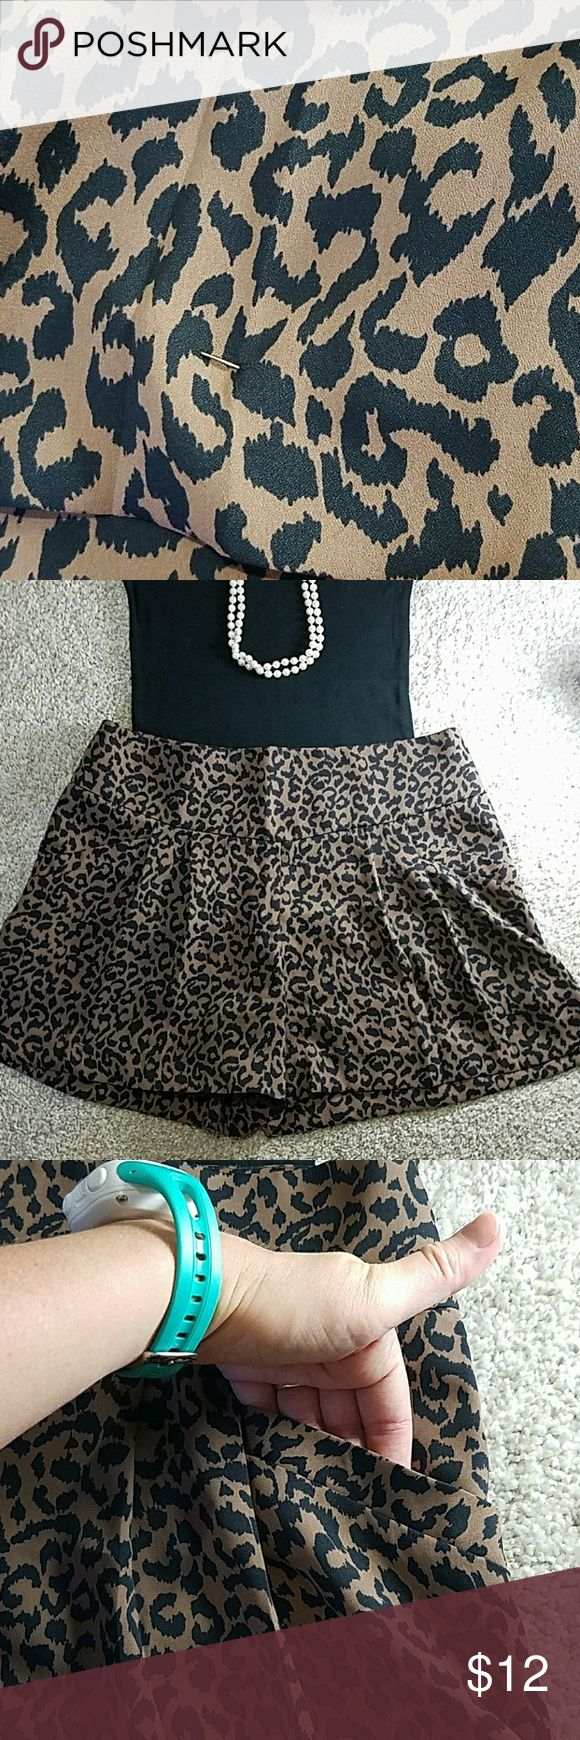 ANNE TAYLOR LOFT | Cheetah Shorts With Pockets Very light, float and lovely! 100% polyester. Pockets on each hip. Needs a little fix to the hem on the right side (But safety pin shown has been doing the trick just fine!). Priced accordingly. Smoke free home and fast shipping! Ann Taylor Shorts